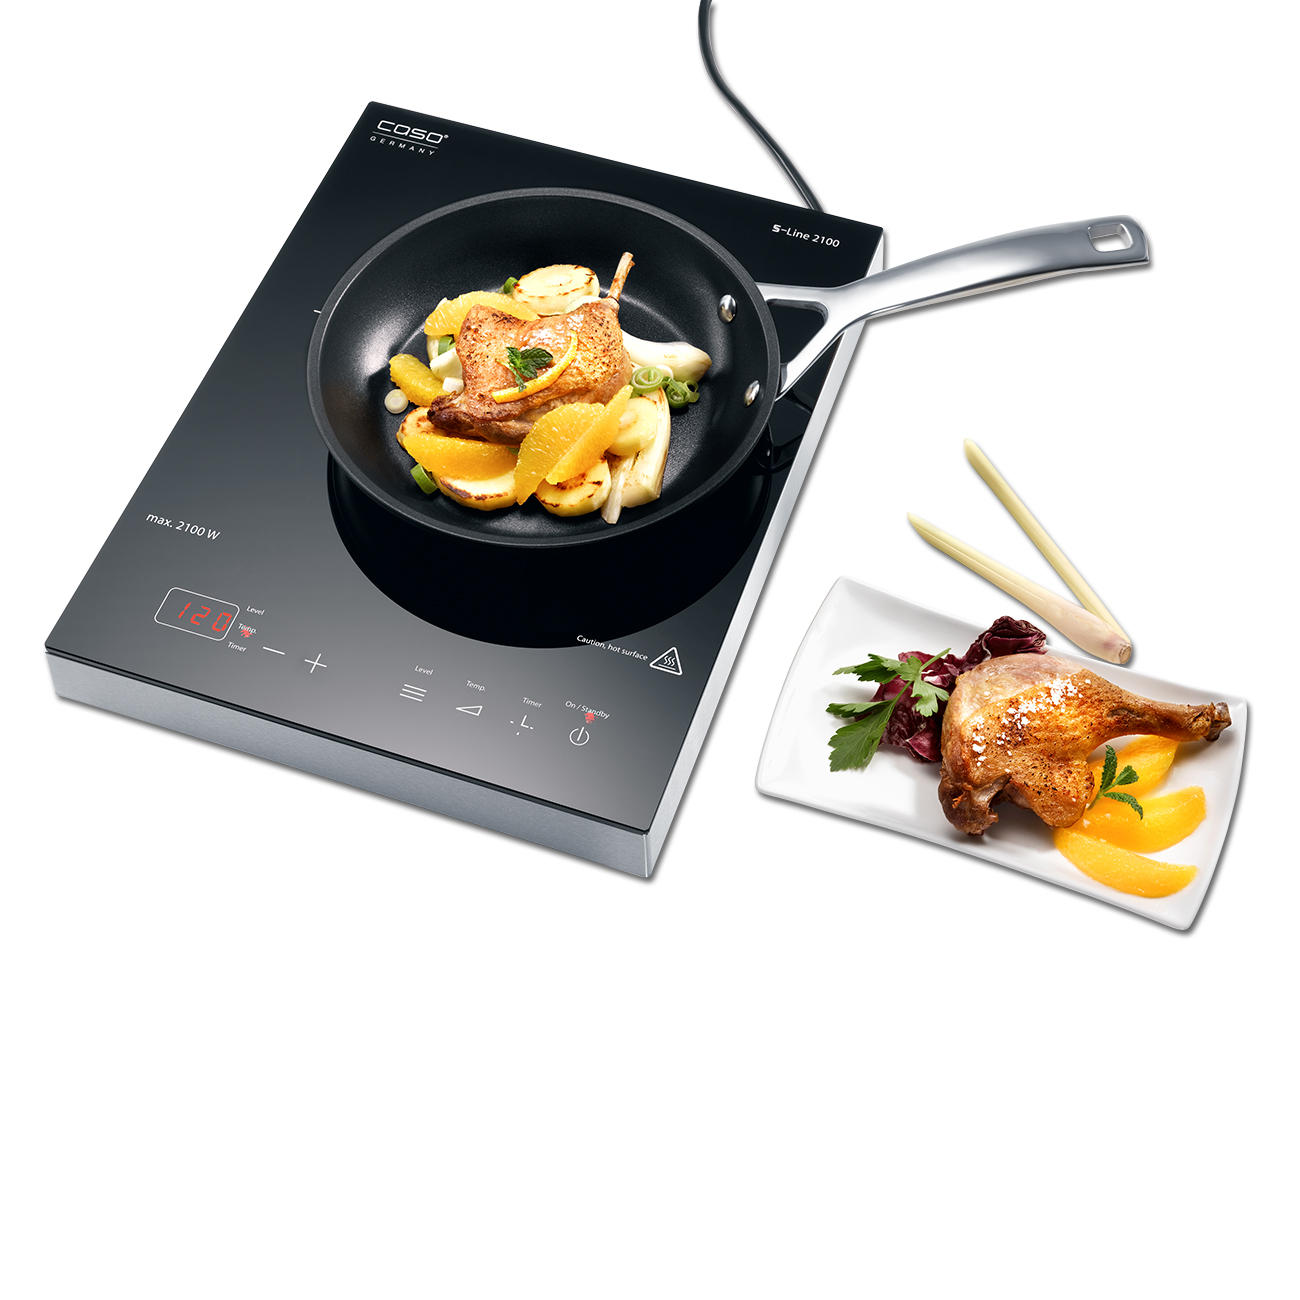 Cuisine Induction Caso Induction Hob S Line 3 Year Product Guarantee